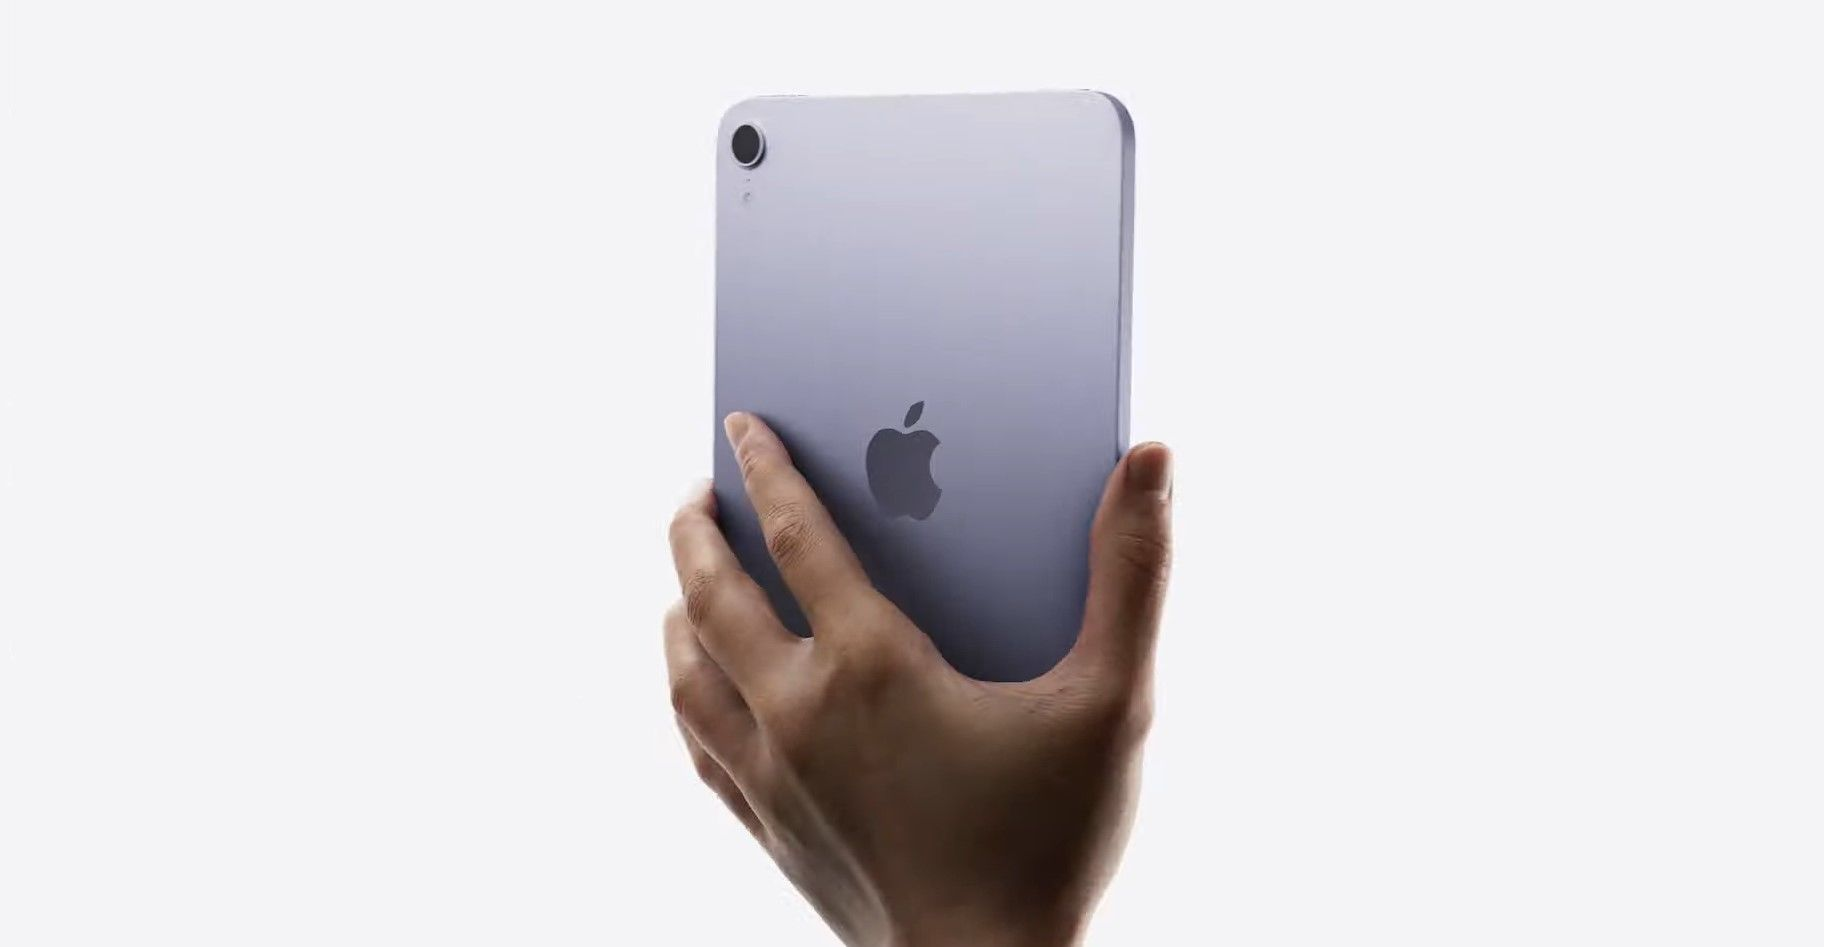 Apple iPhone 13 price, models and features